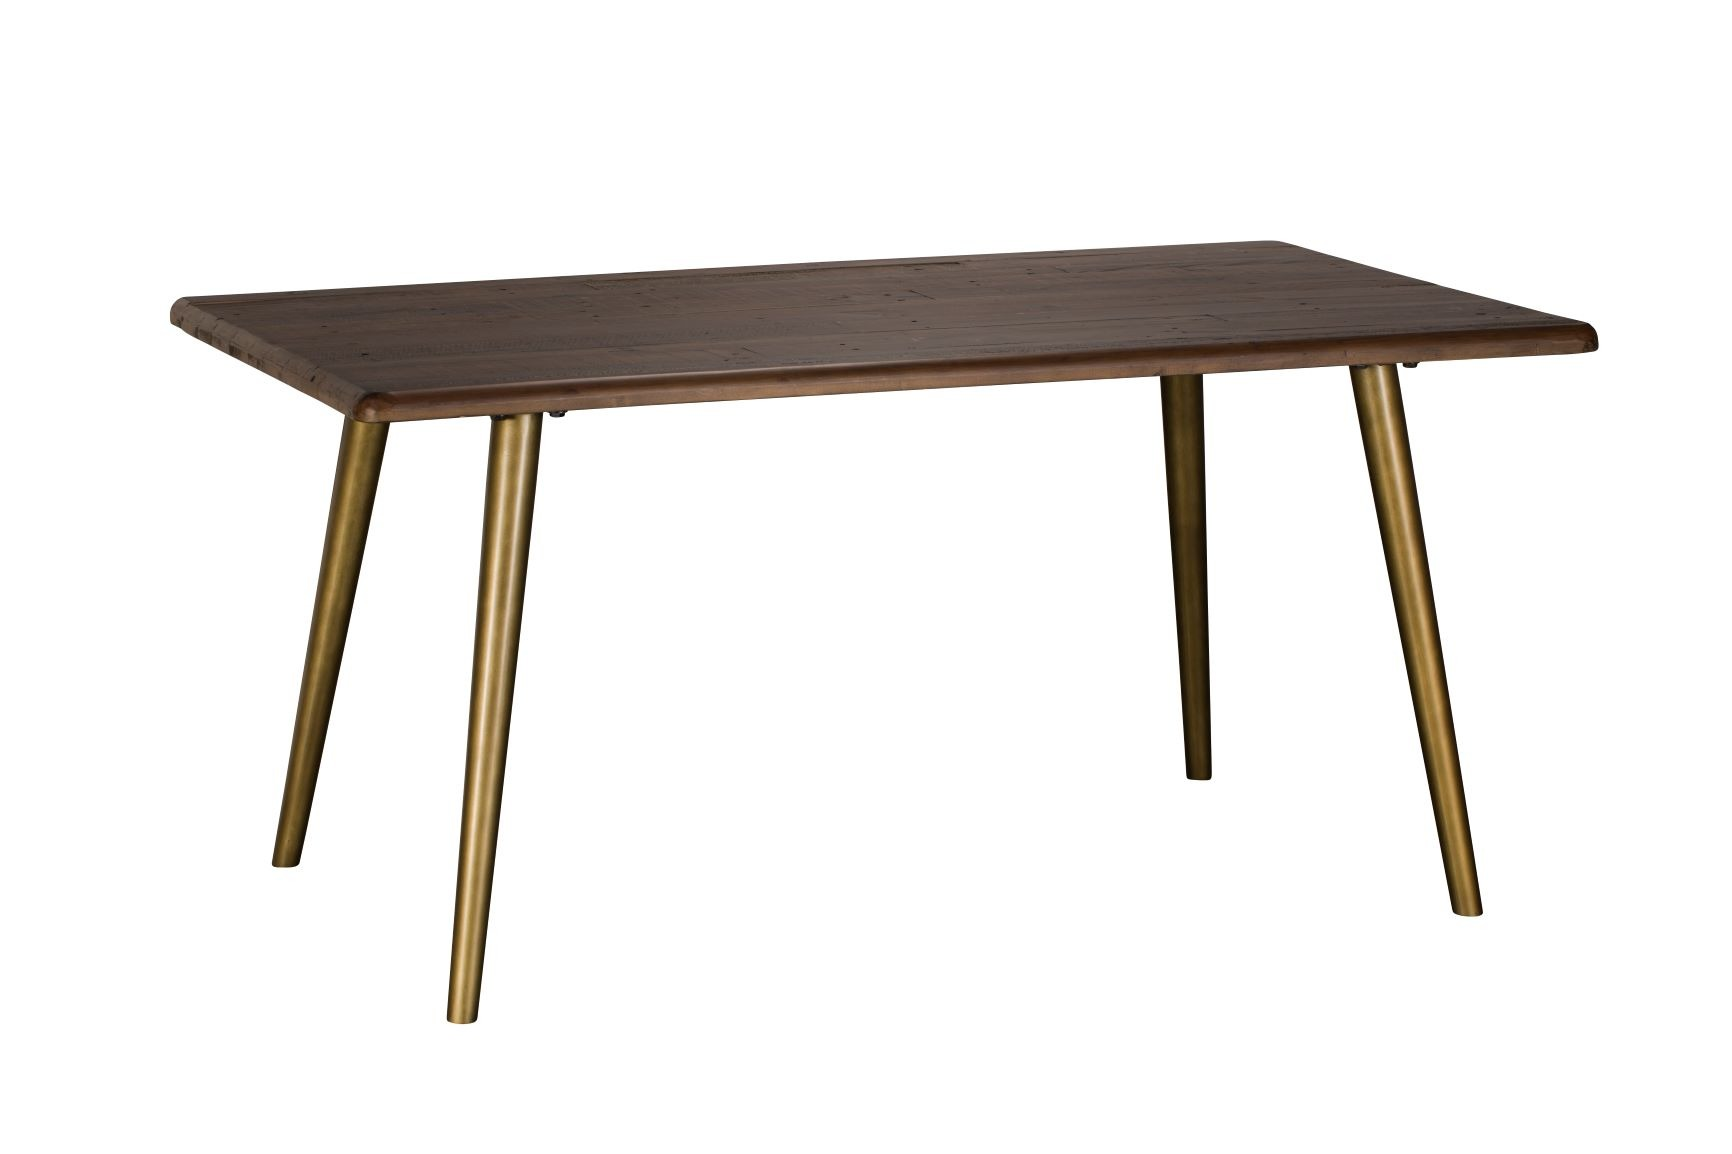 RADLEY DINING TABLE - L160cm x D90cm x H77cm